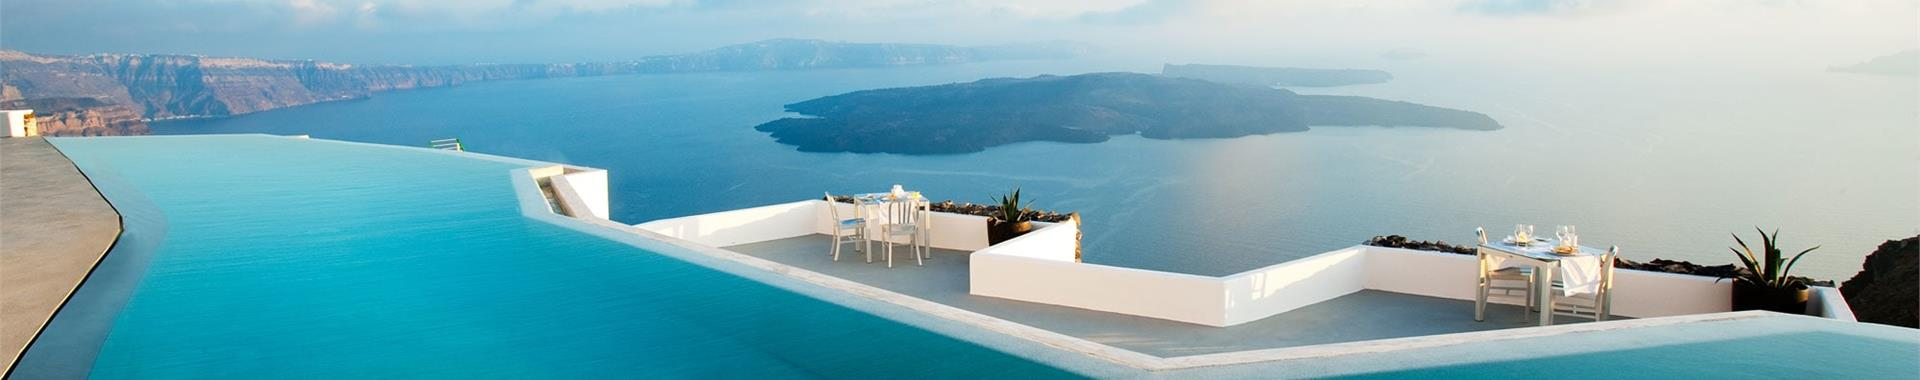 Fira or Megalochori Santorini Hotels on the Caldera